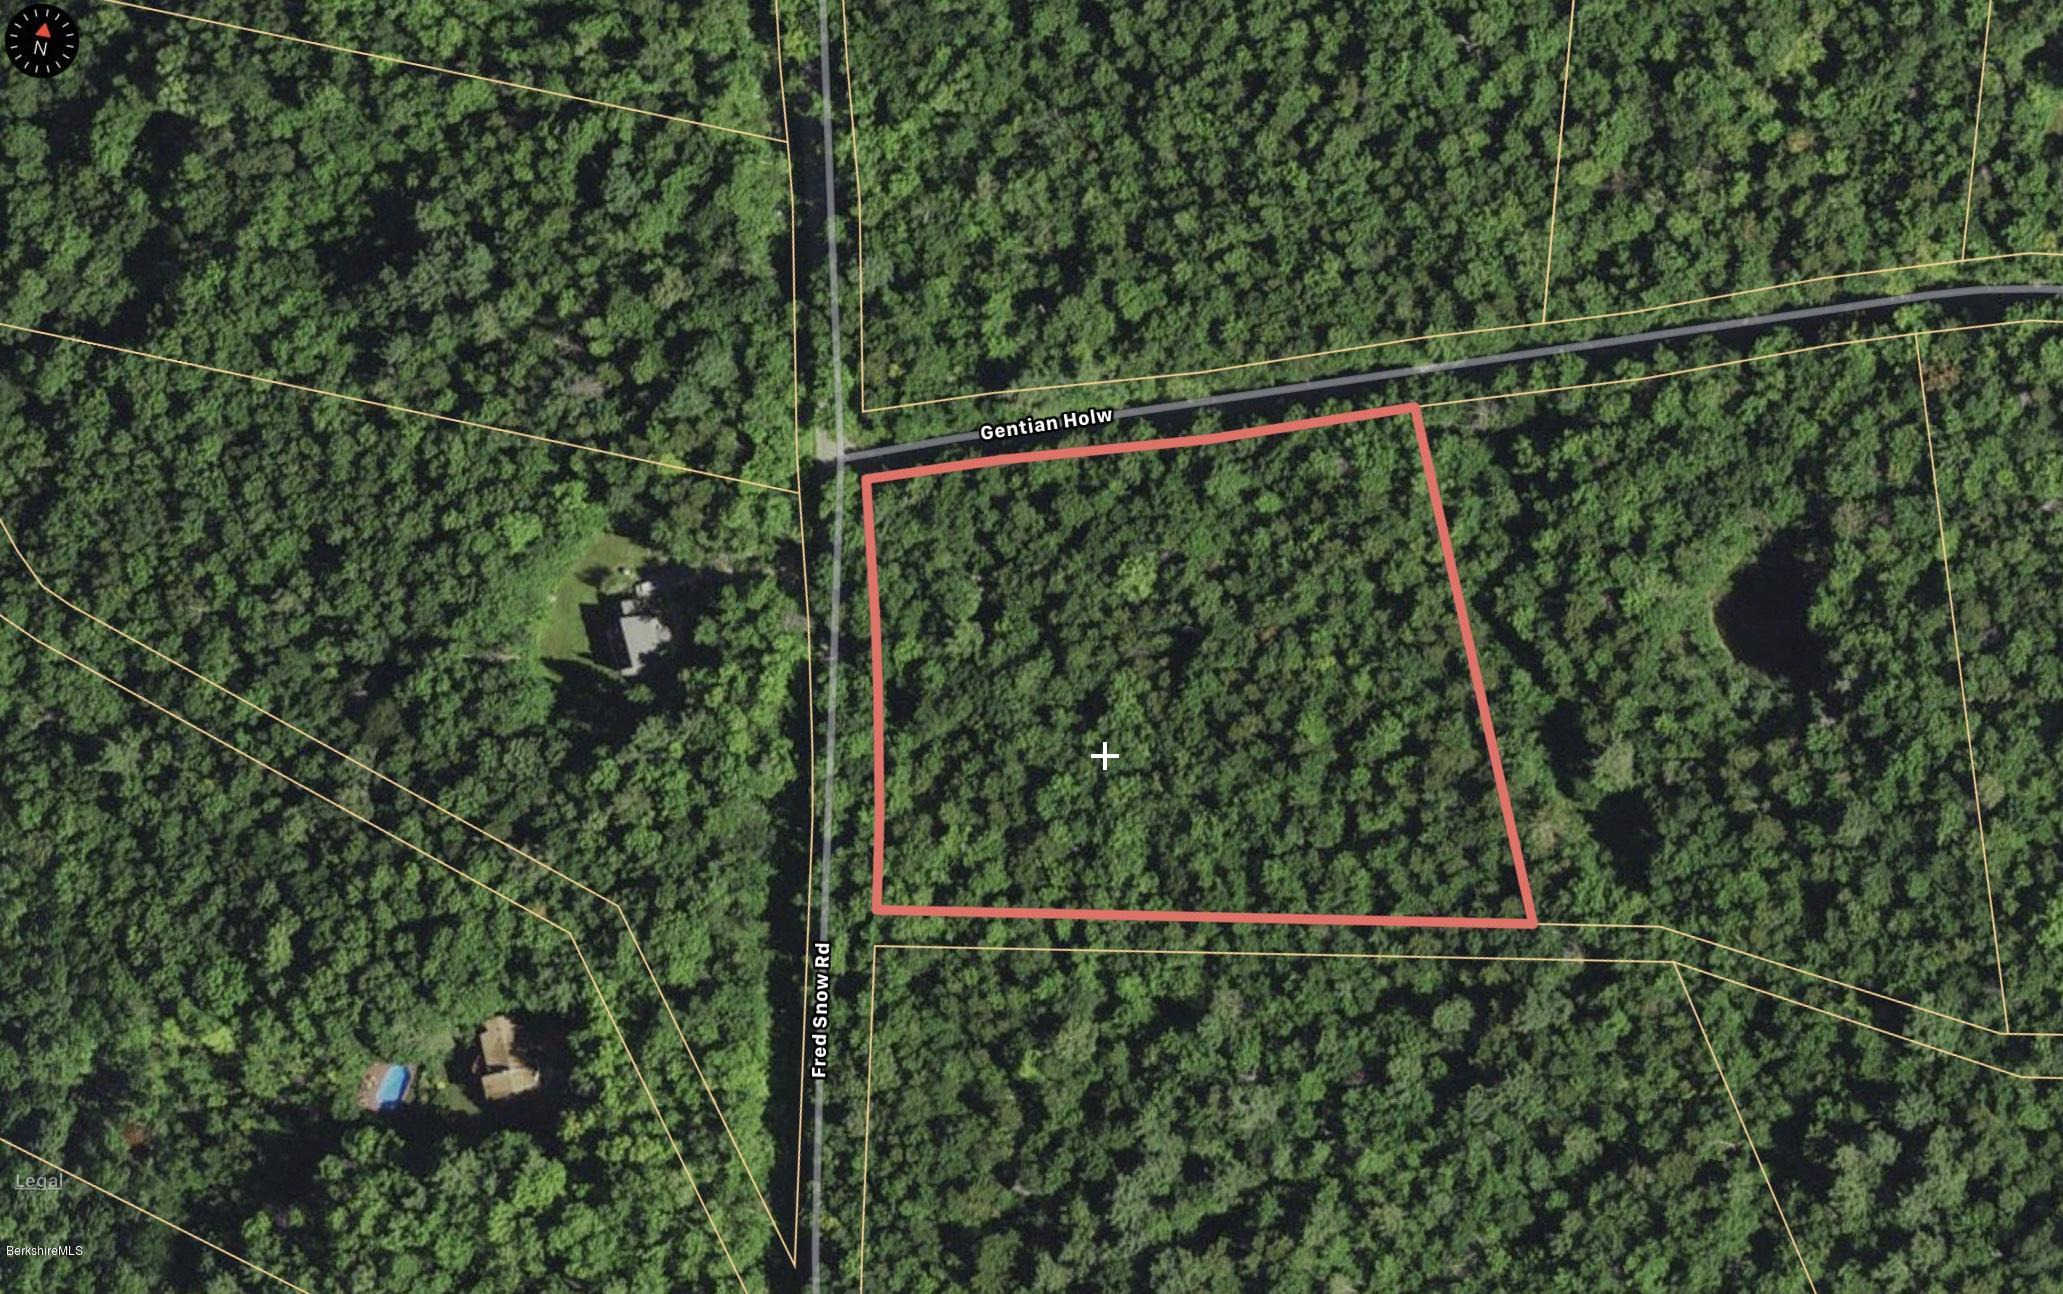 Property located at 0 Gentian Hollow Rd Becket MA 01223 photo